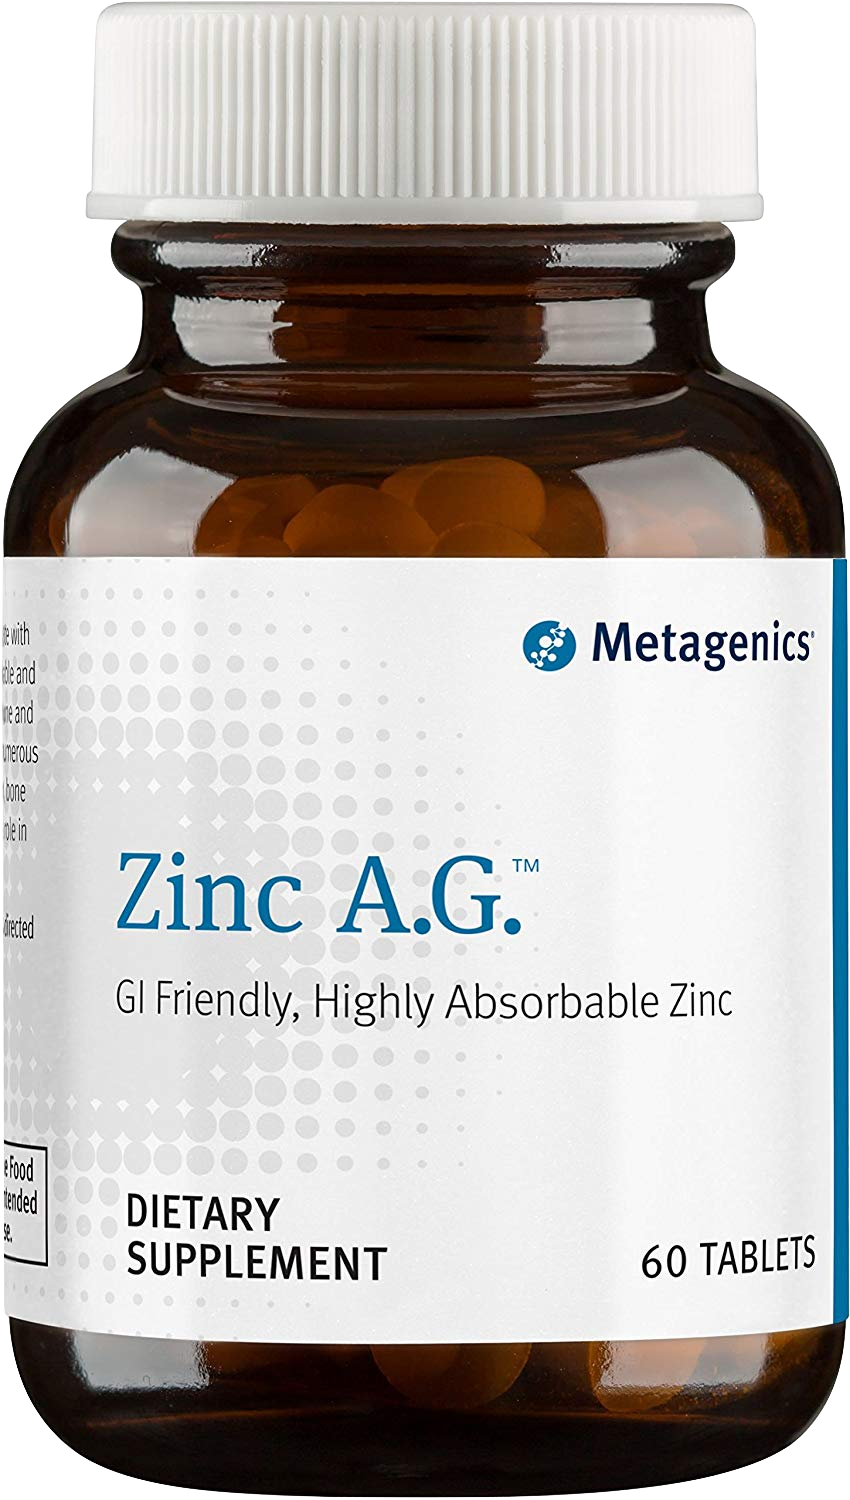 Zinc A.G. 60T by Metagenics